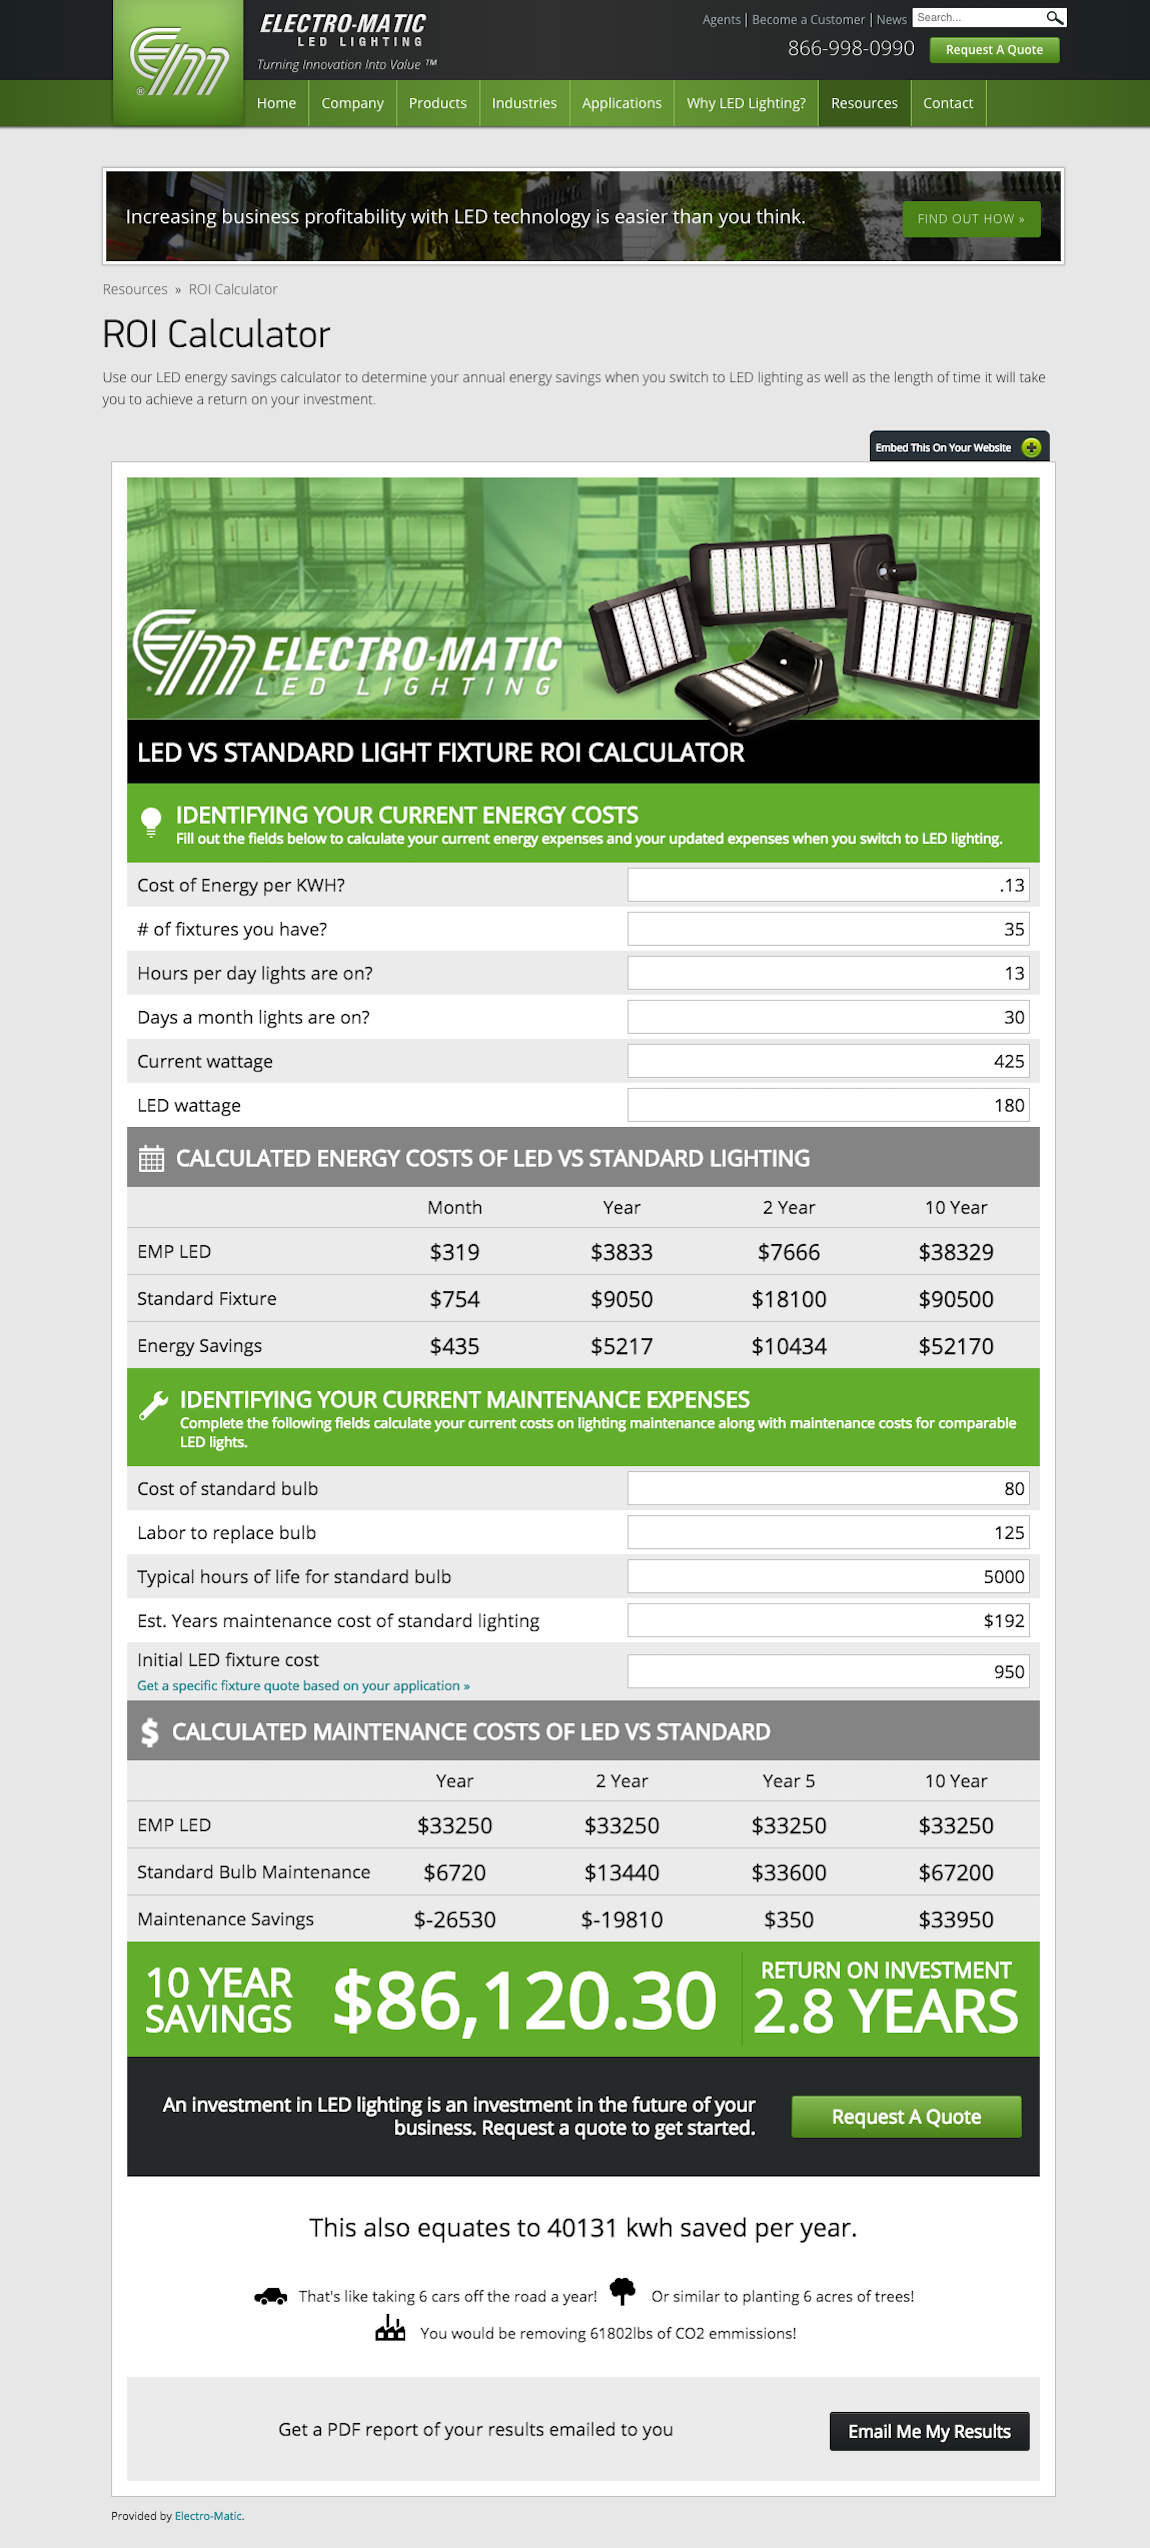 EM LED Lighting Roi Calculator Interactive Website Features